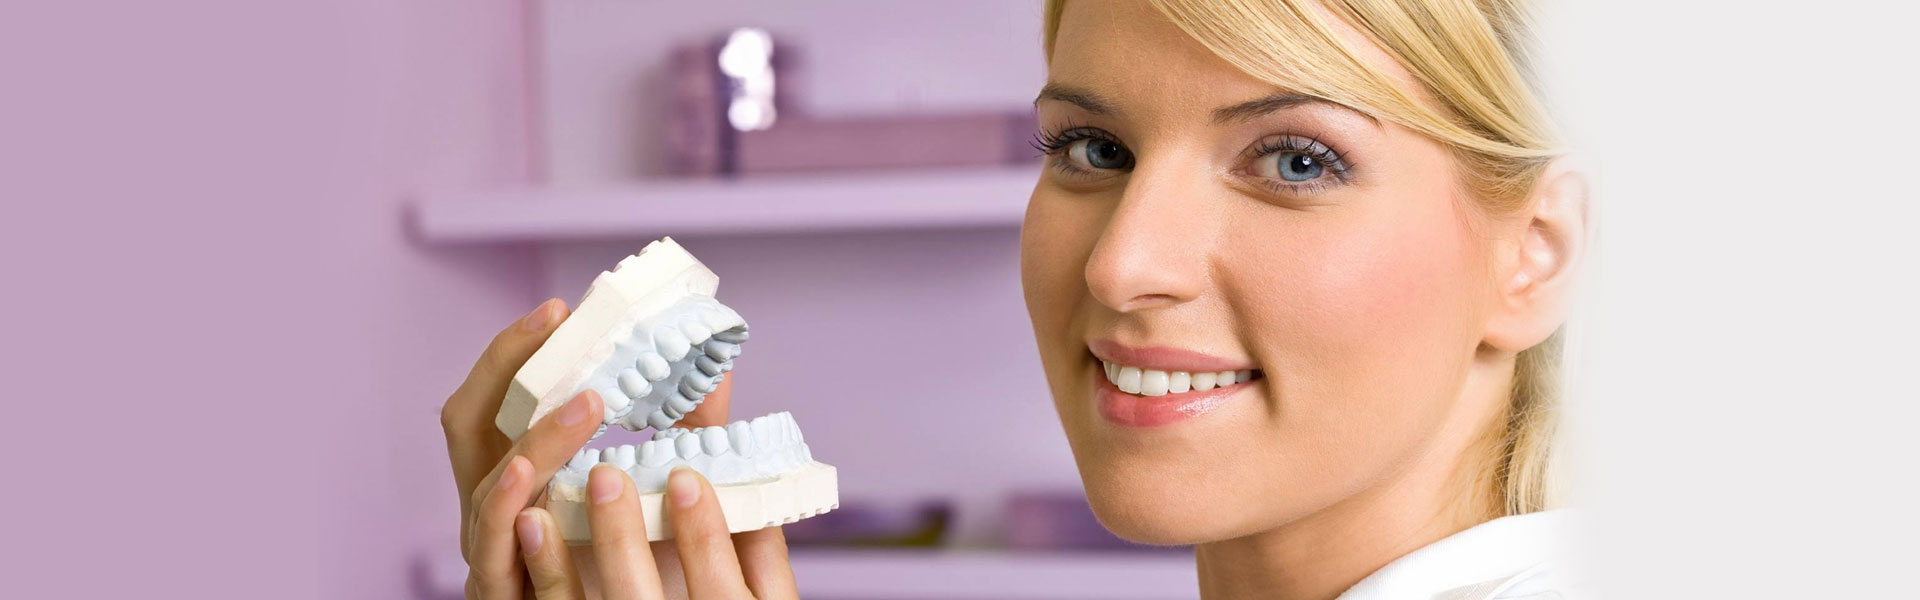 Restorative Dentistry in Laguna Beach, CA